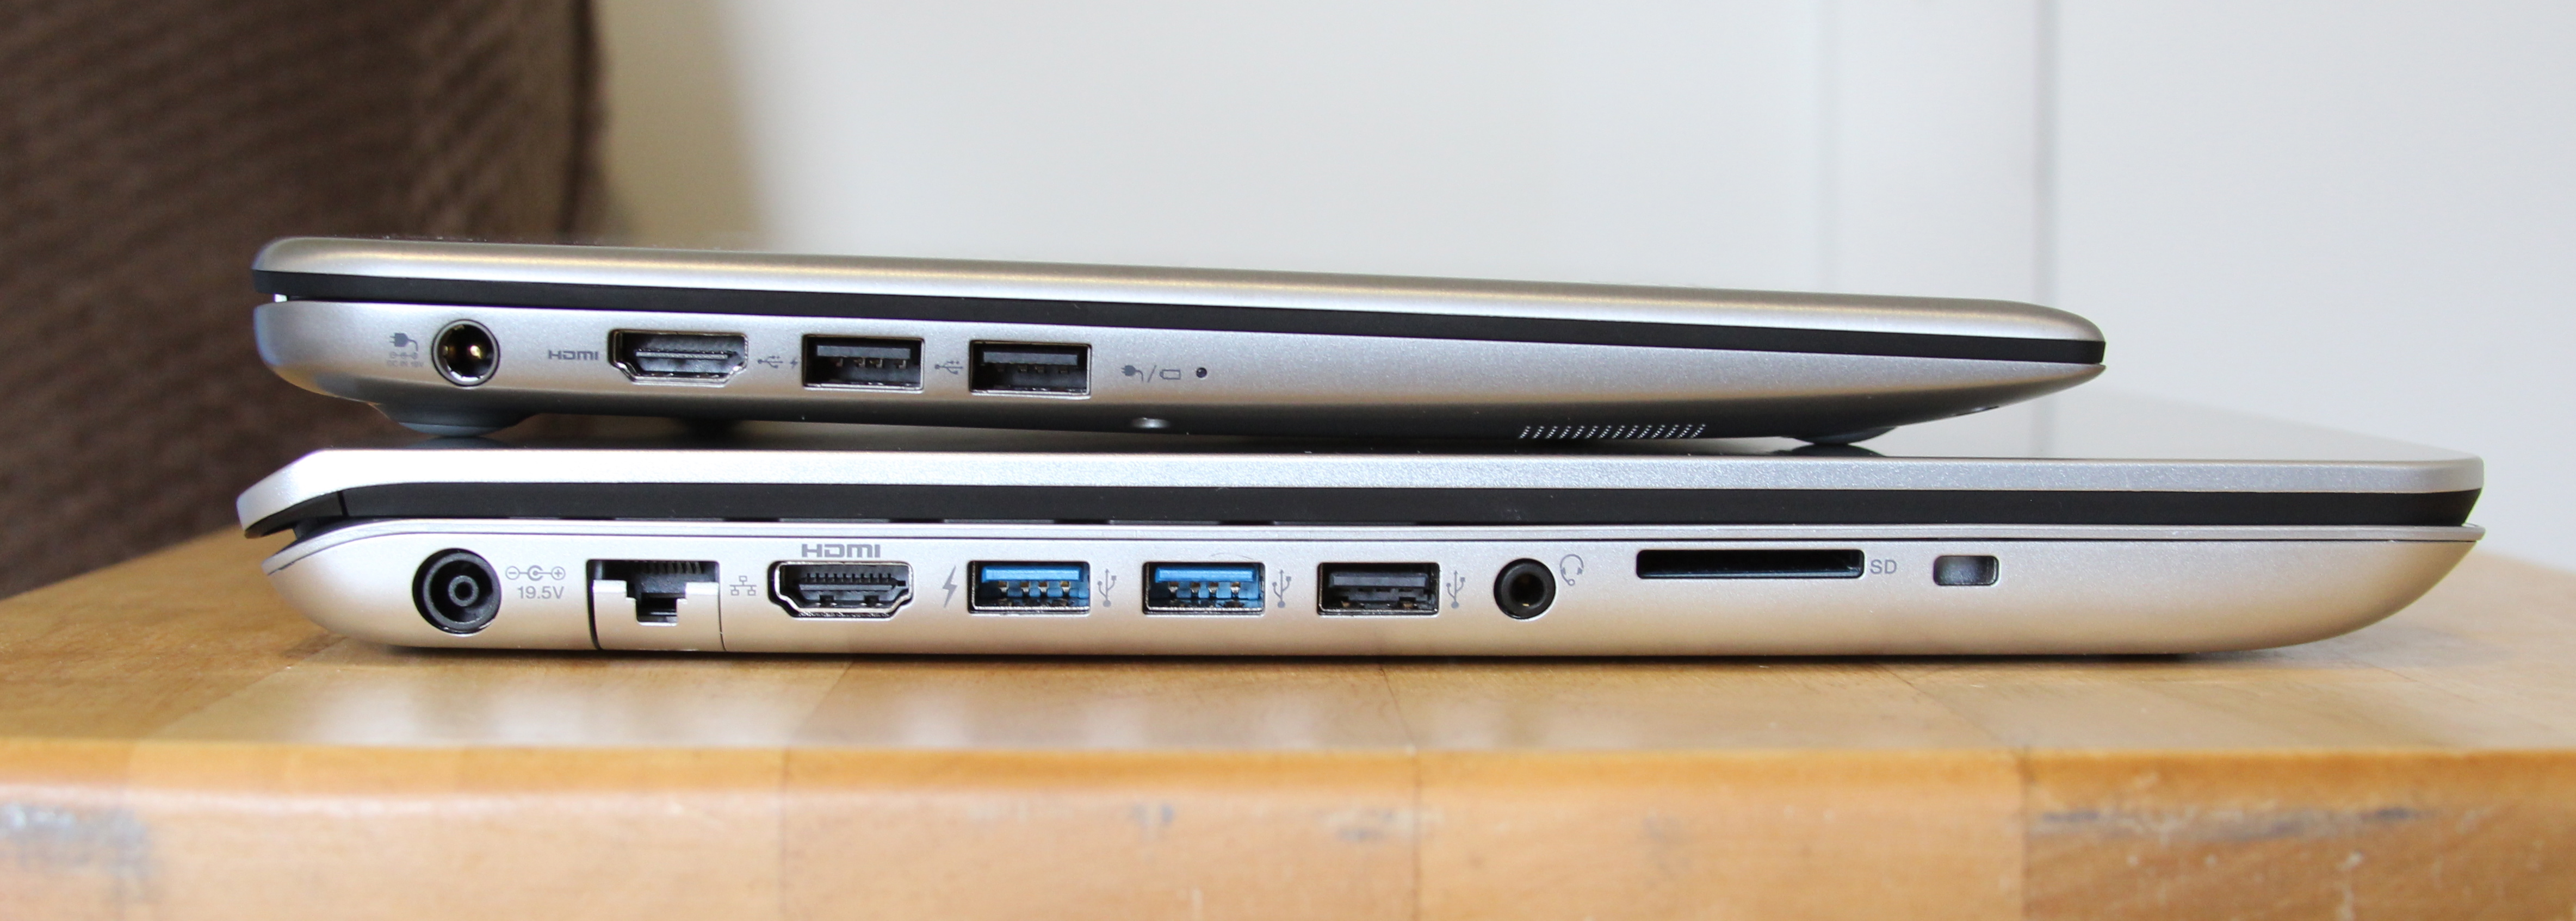 The laptops offer a fair number of ports. On the Fit 15, you get gigabit Ethernet, HDMI, two USB 3.0 ports, one USB 2.0 port, a headphone jack, a card reader, and a Kensington lock slot. Compare the thickness to Toshiba's Kirabook Ultrabook (top).